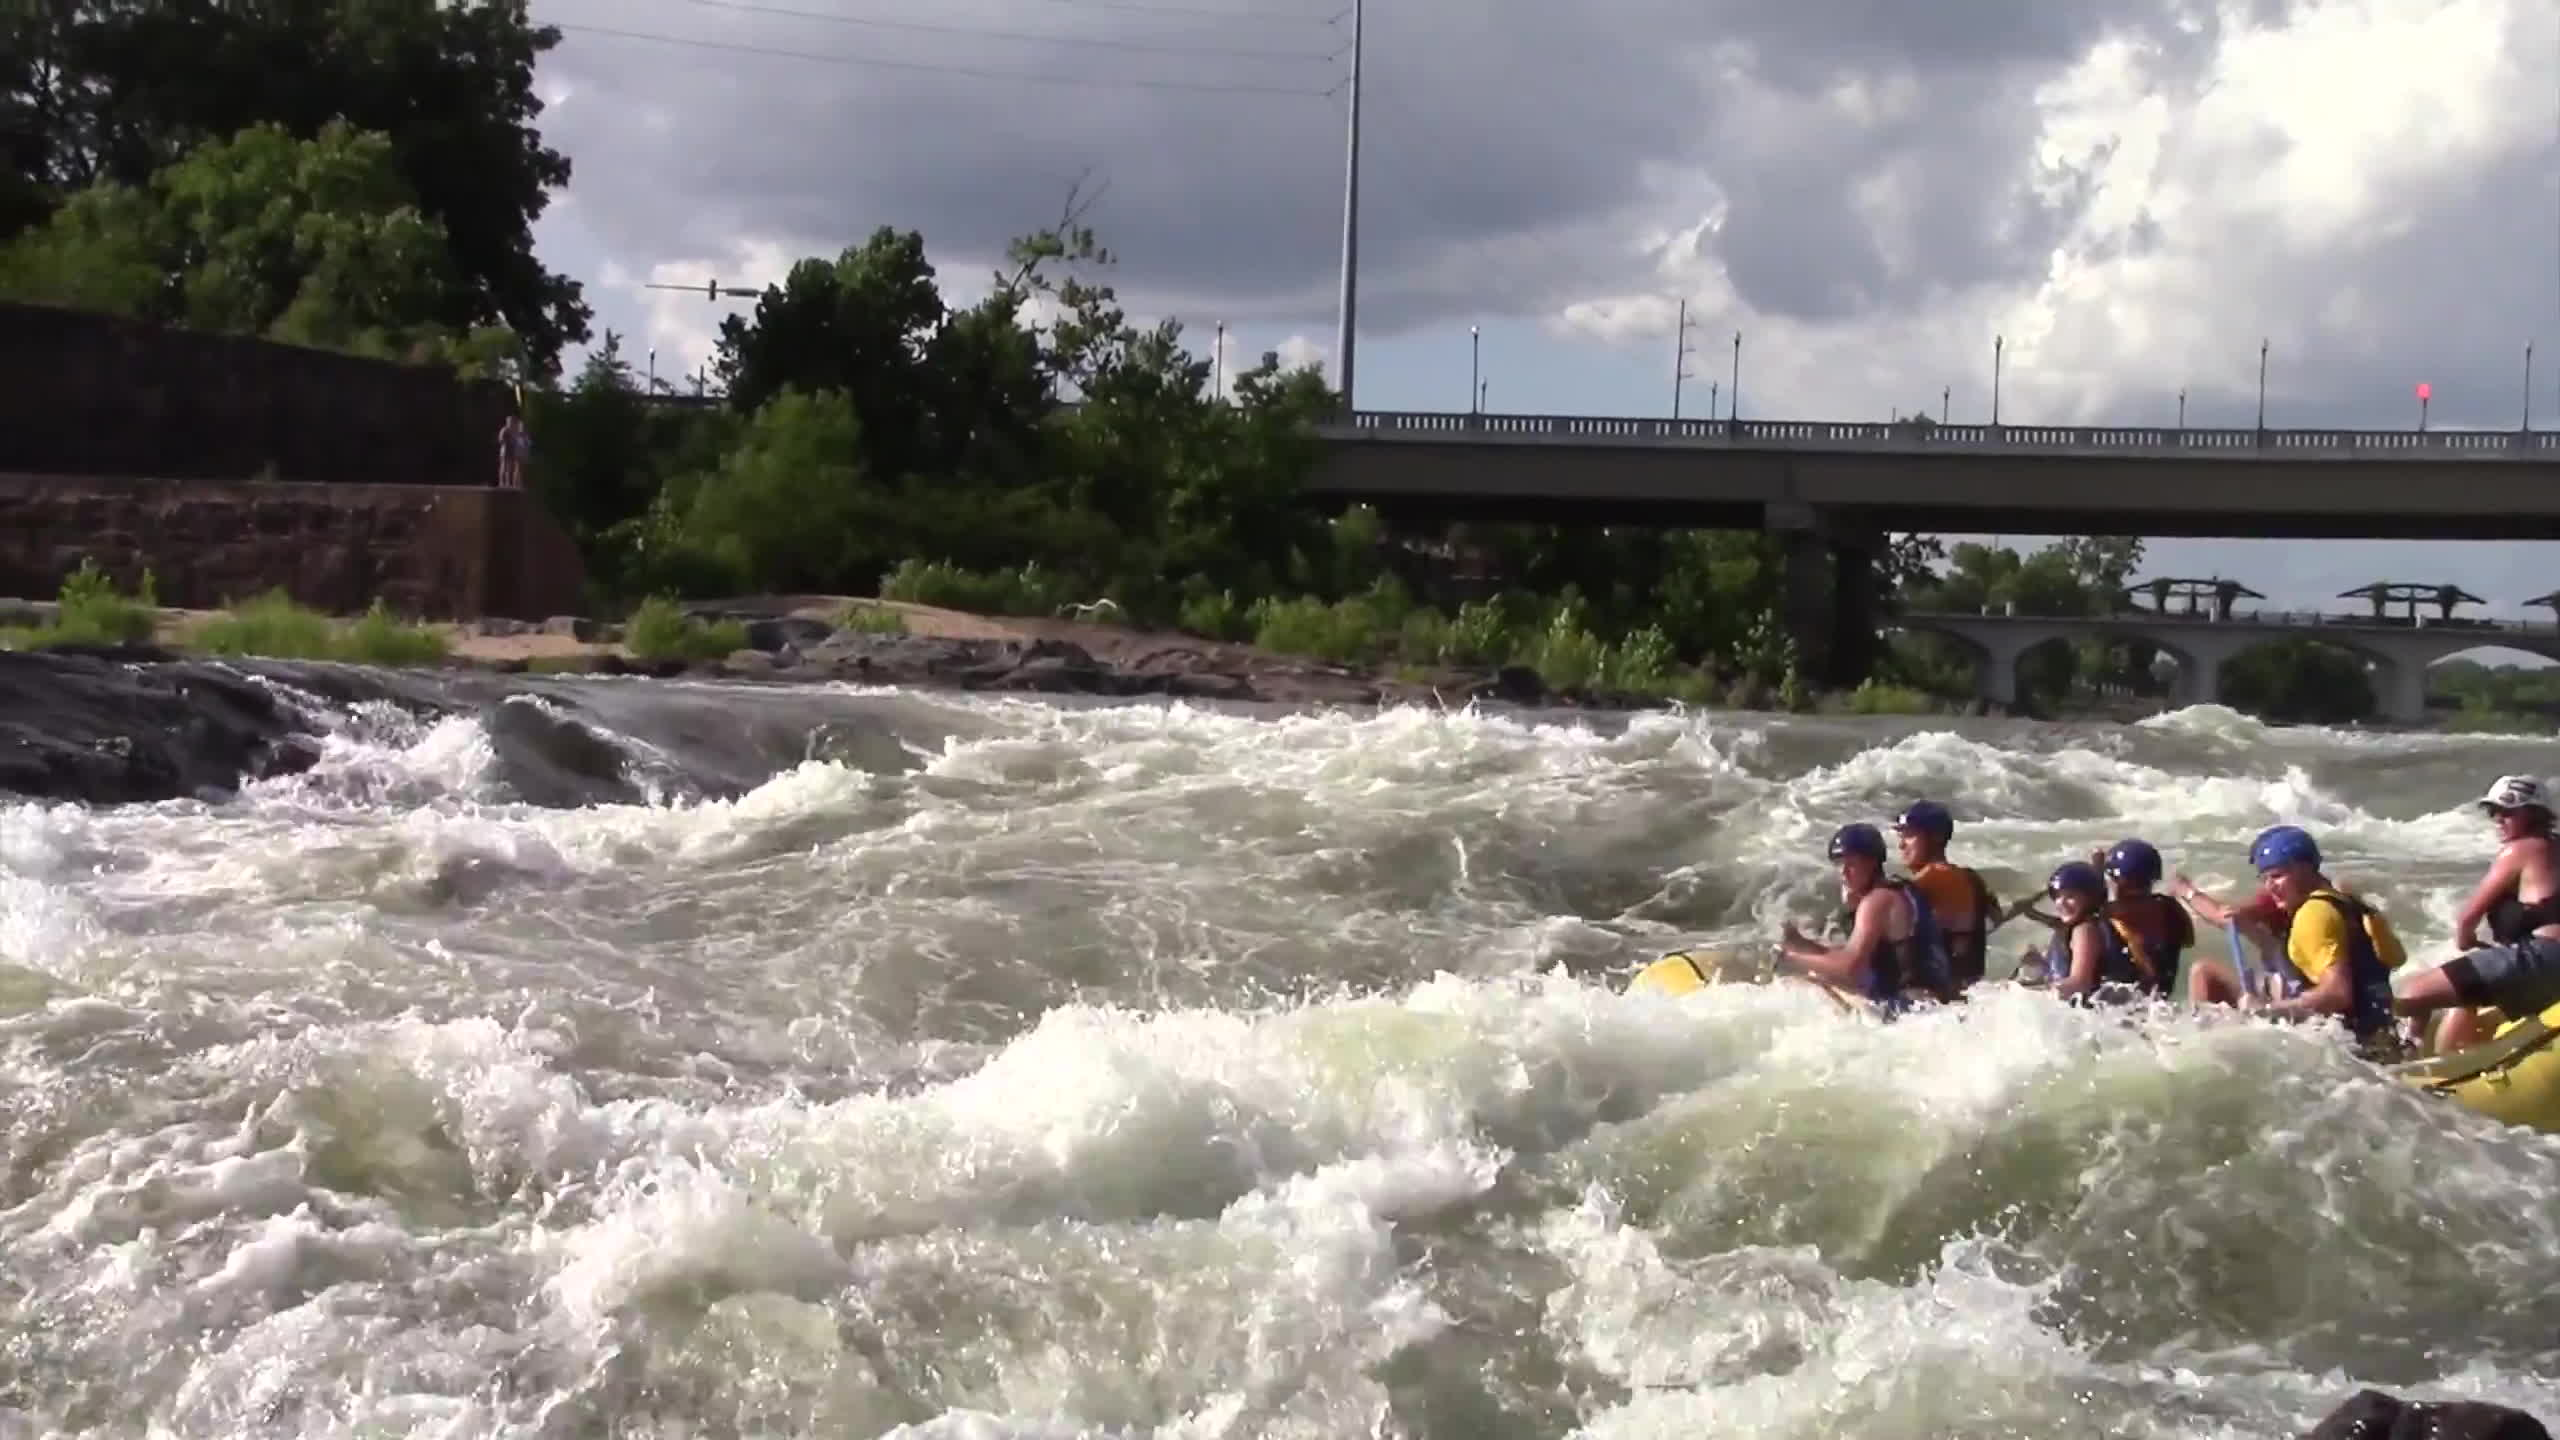 ocoee river, rafting, whitewater rafting, 2016 WHITEWATER RAFTING CARNAGE VIDEO on Ocoee, Gauley, Chattahoochee, Tallulah Rivers and More GIFs